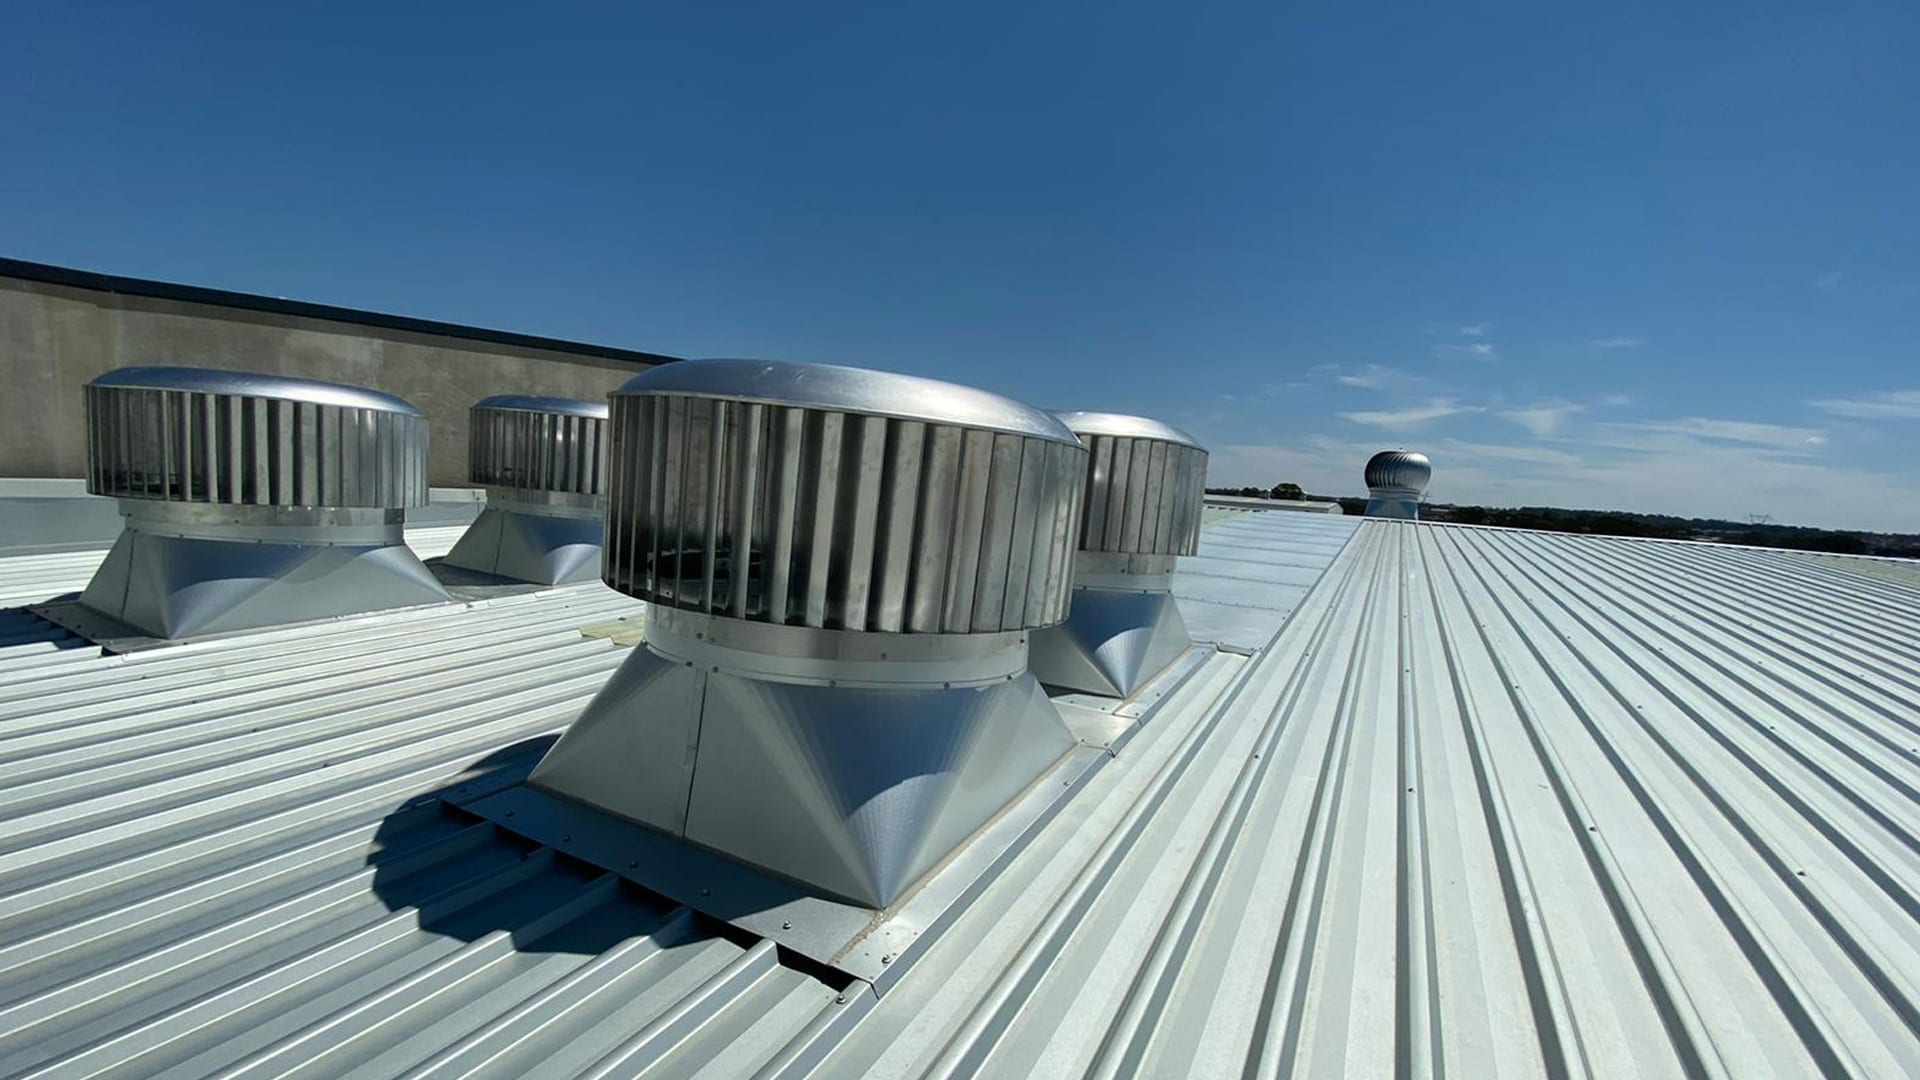 commercial roofing ventilators sydney